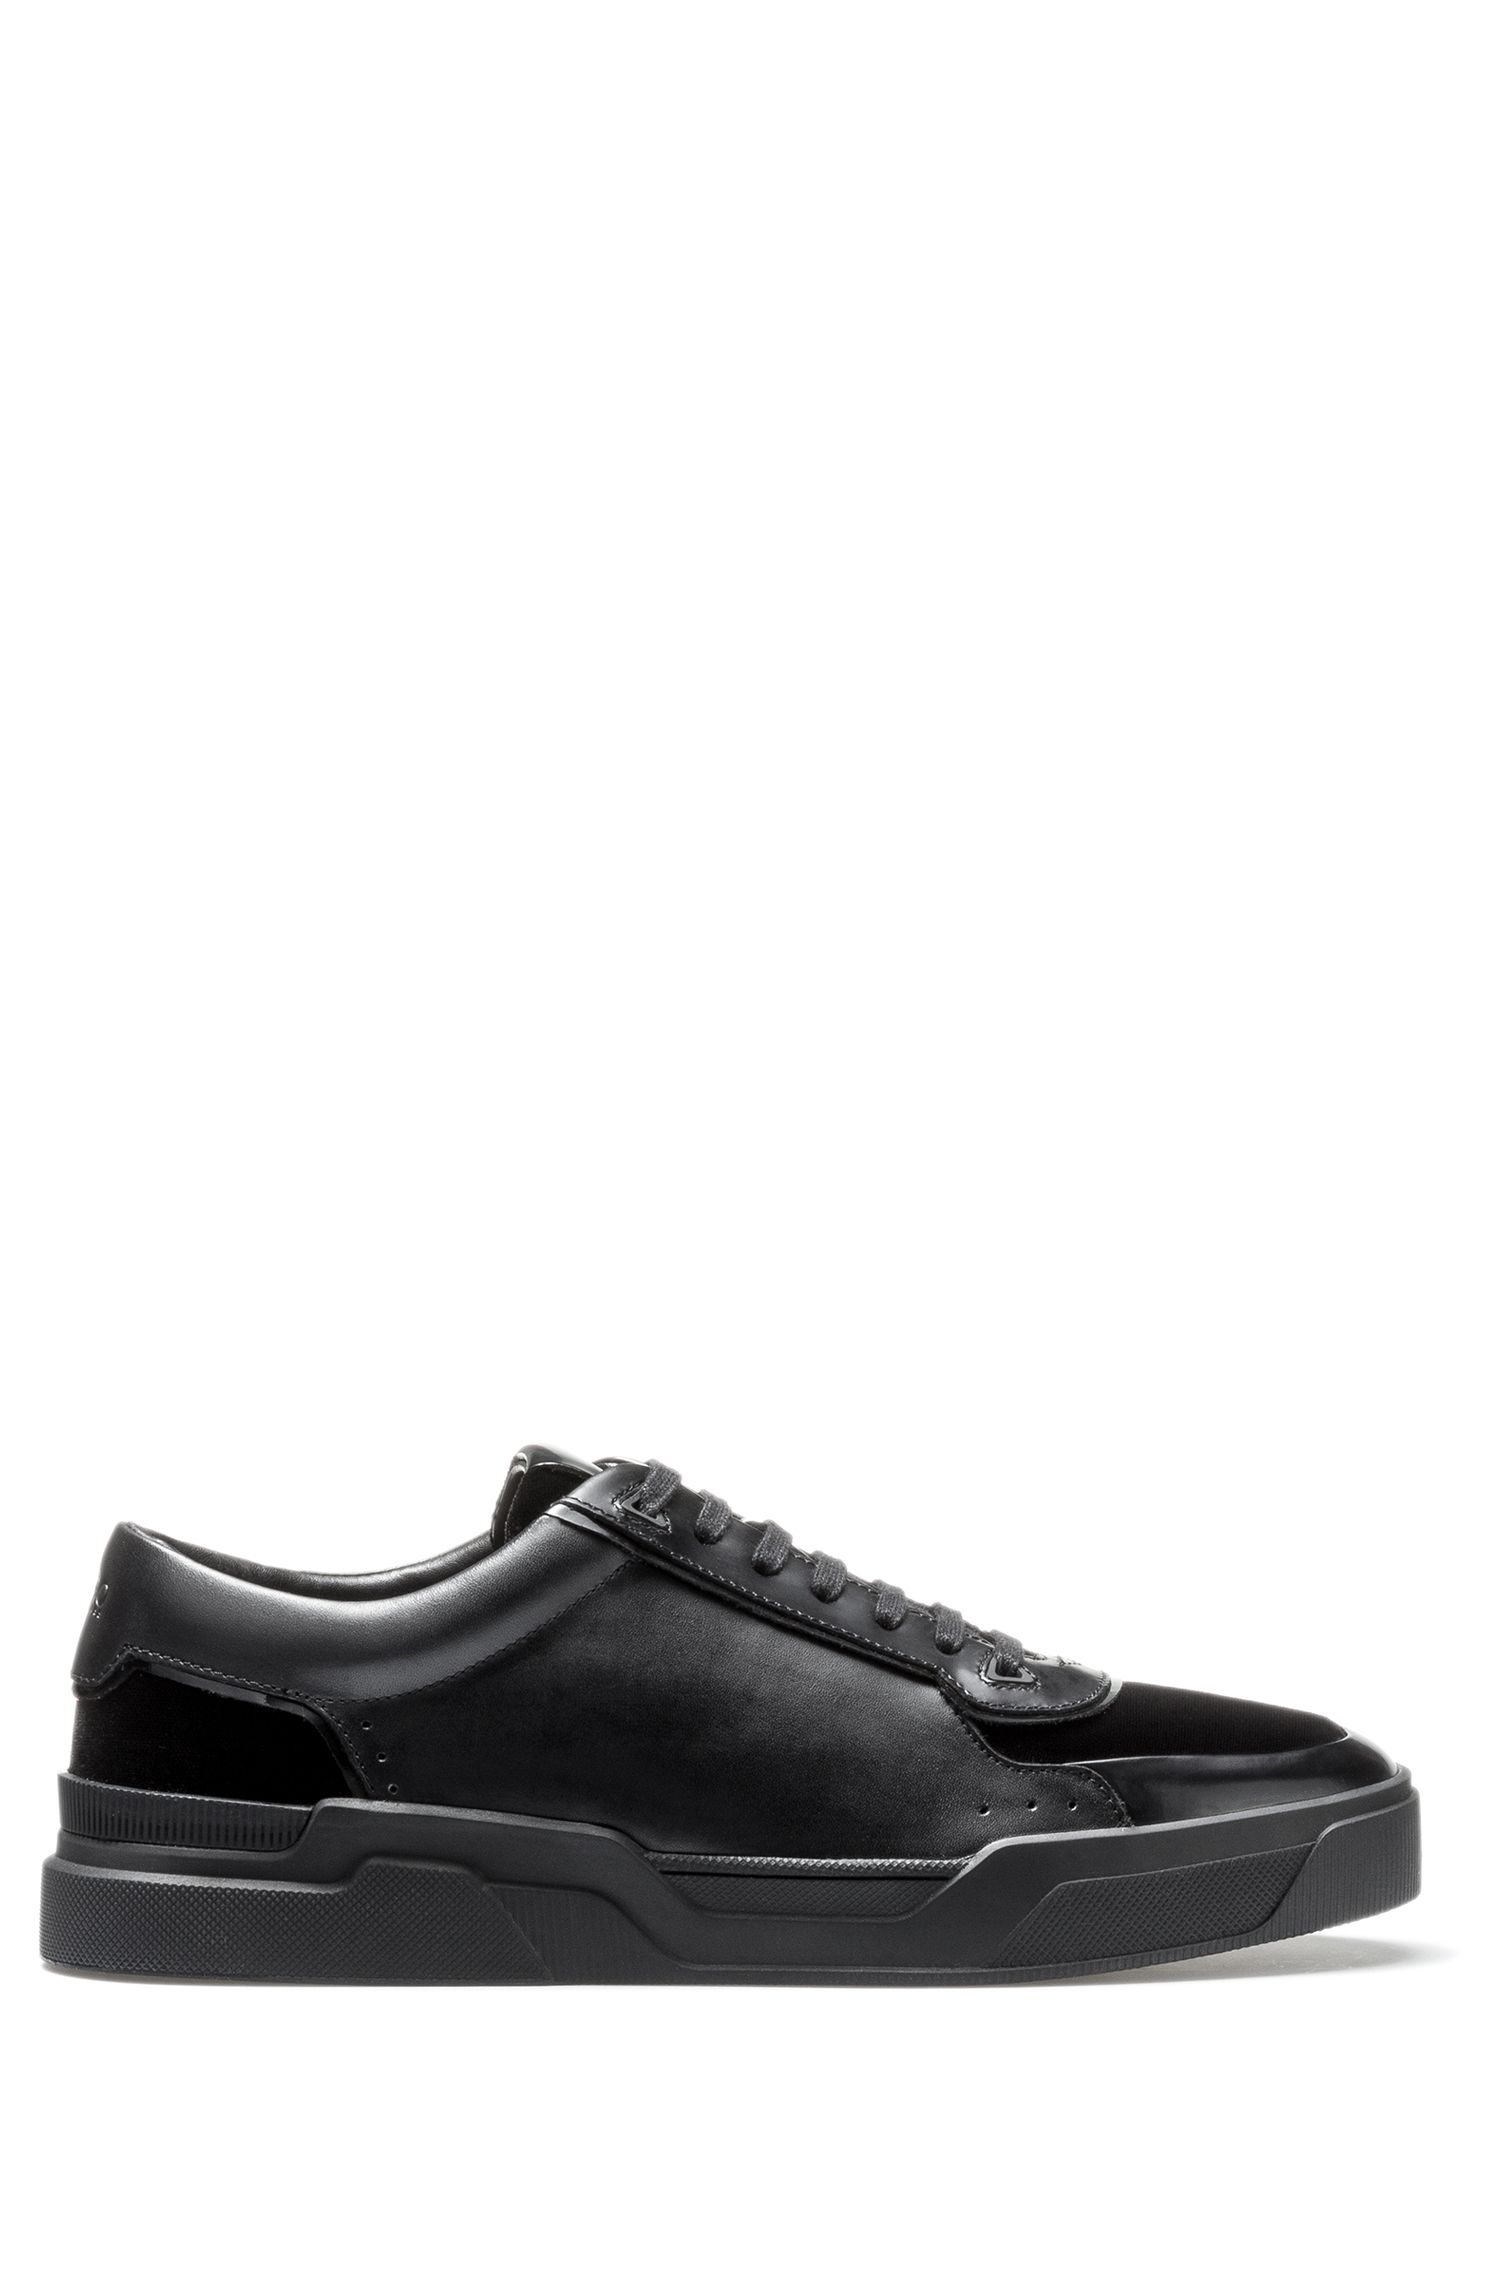 Nappa Leather & Italian Velvet Sneaker | Symmetric Tenn Itvlt, Black